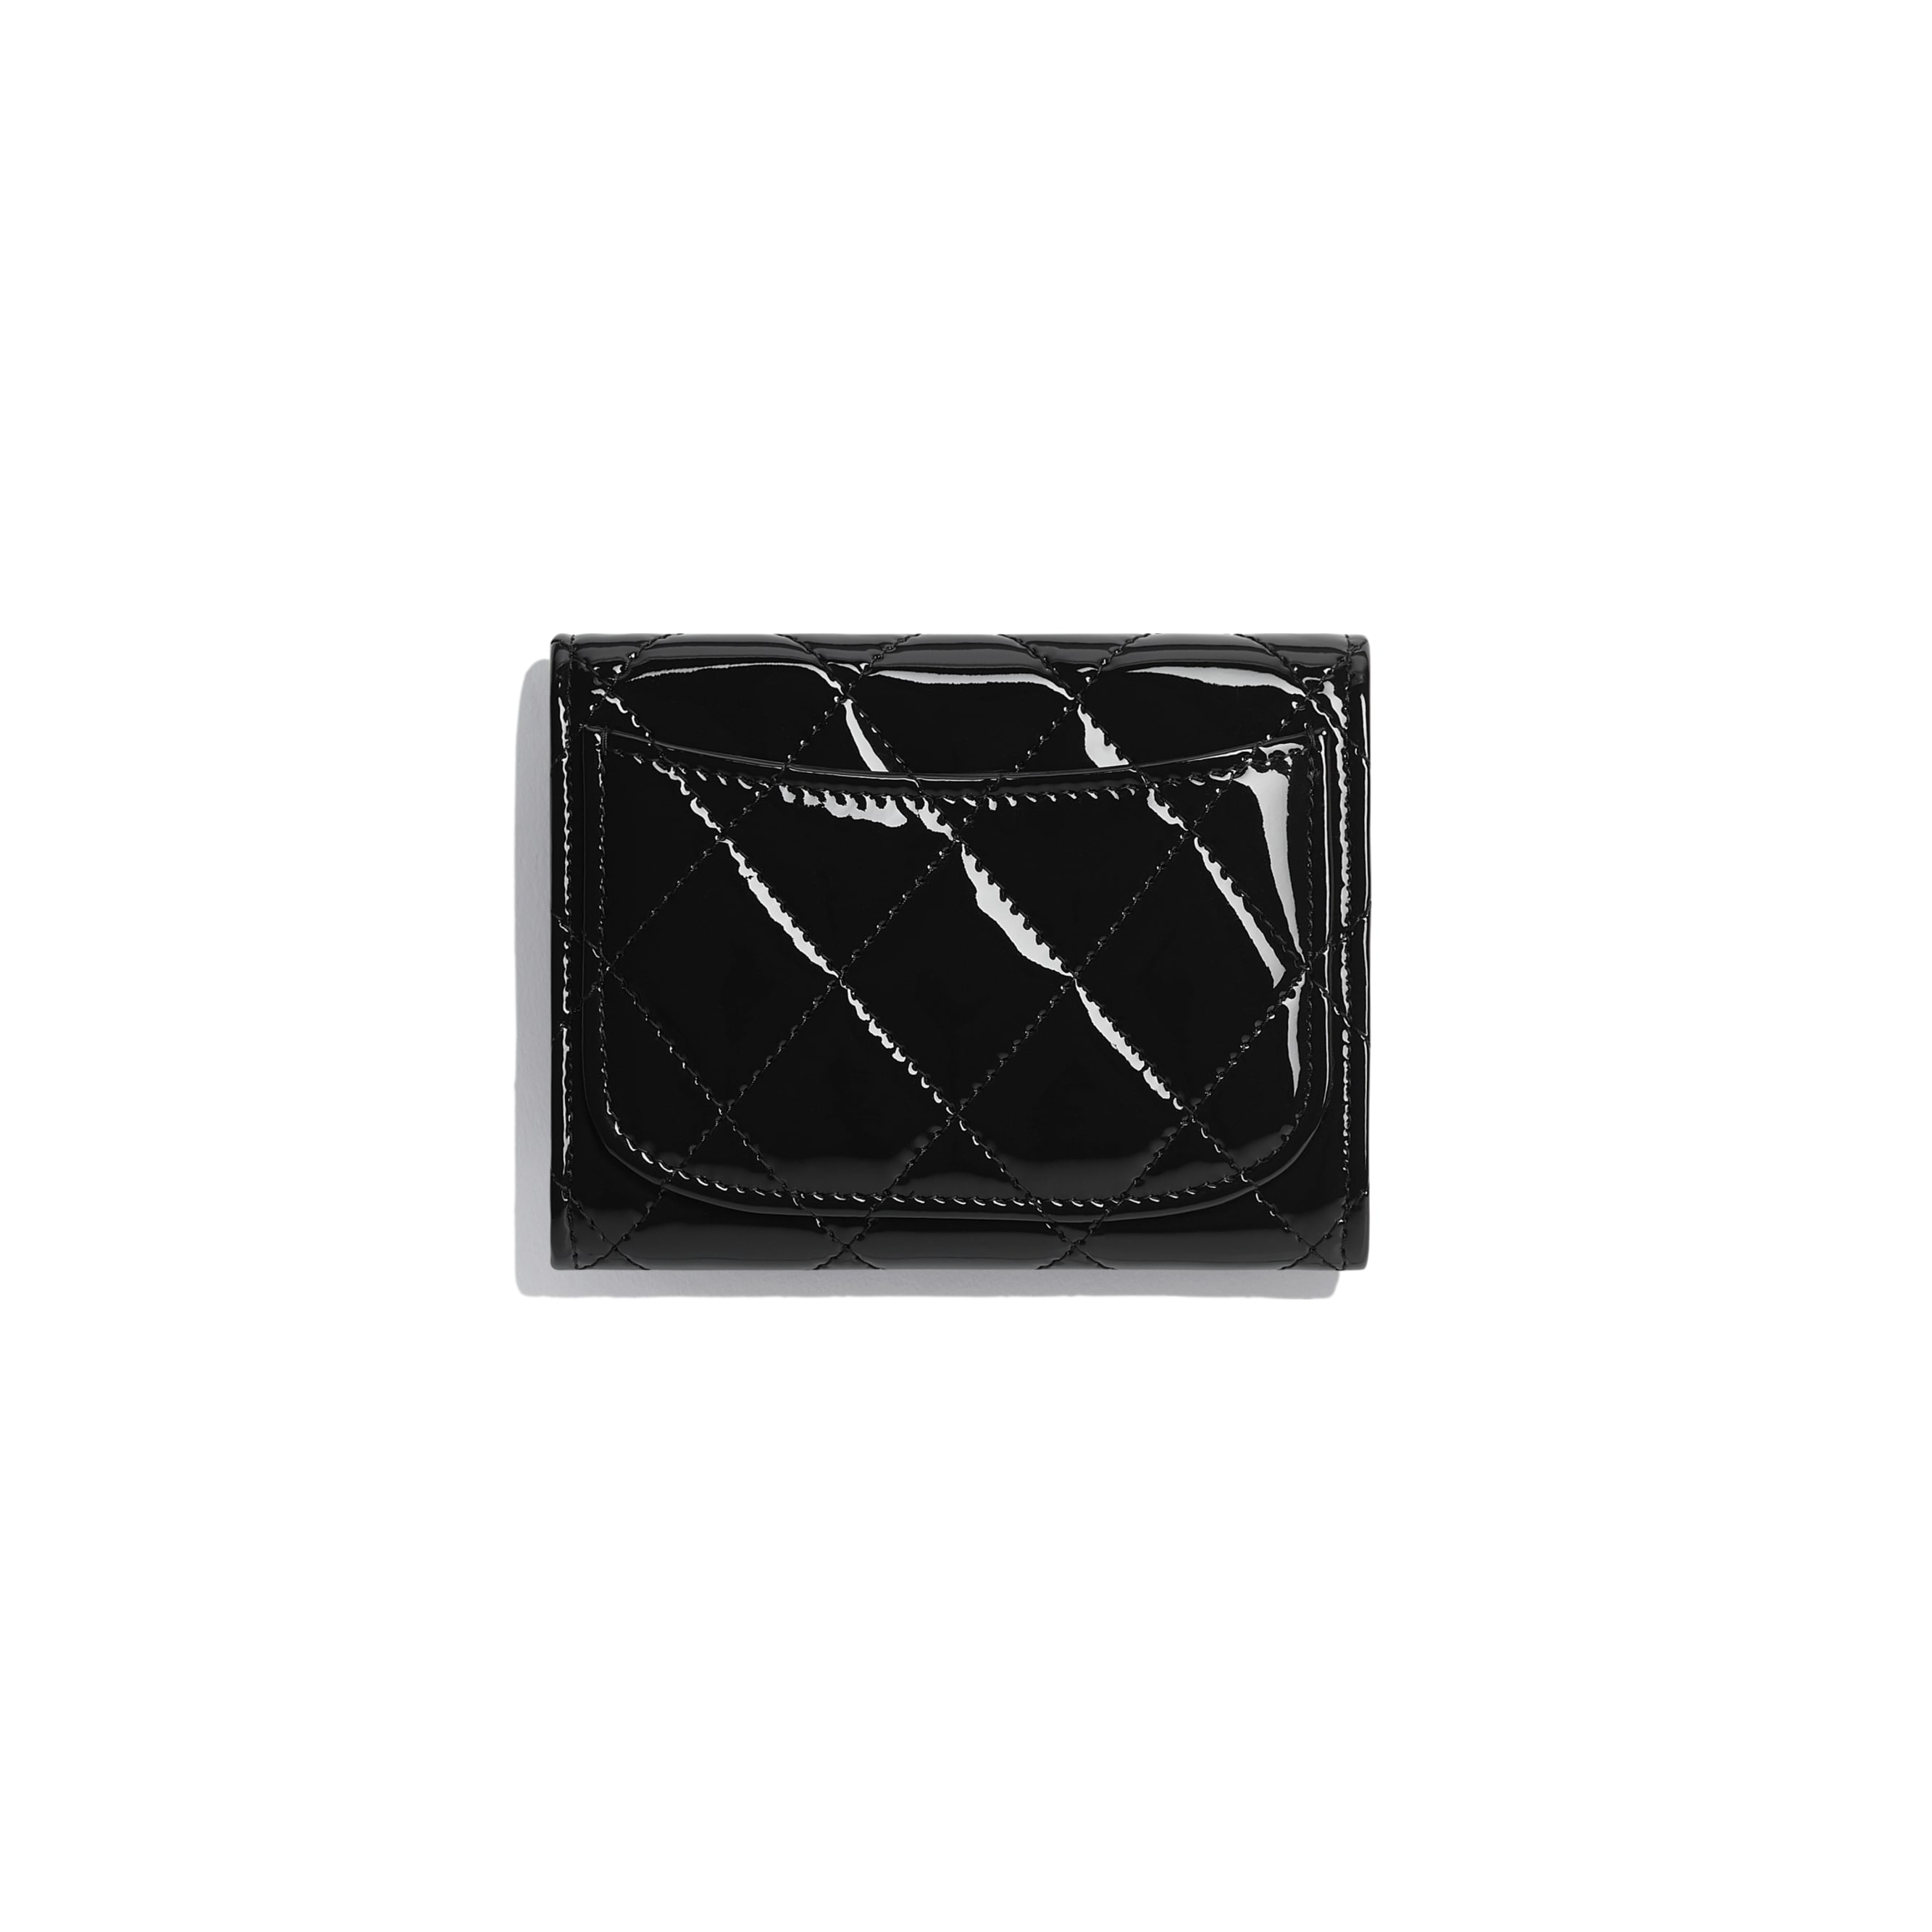 2.55 Flap Coin Purse - Black - Patent Calfskin & Black Metal - Alternative view - see standard sized version